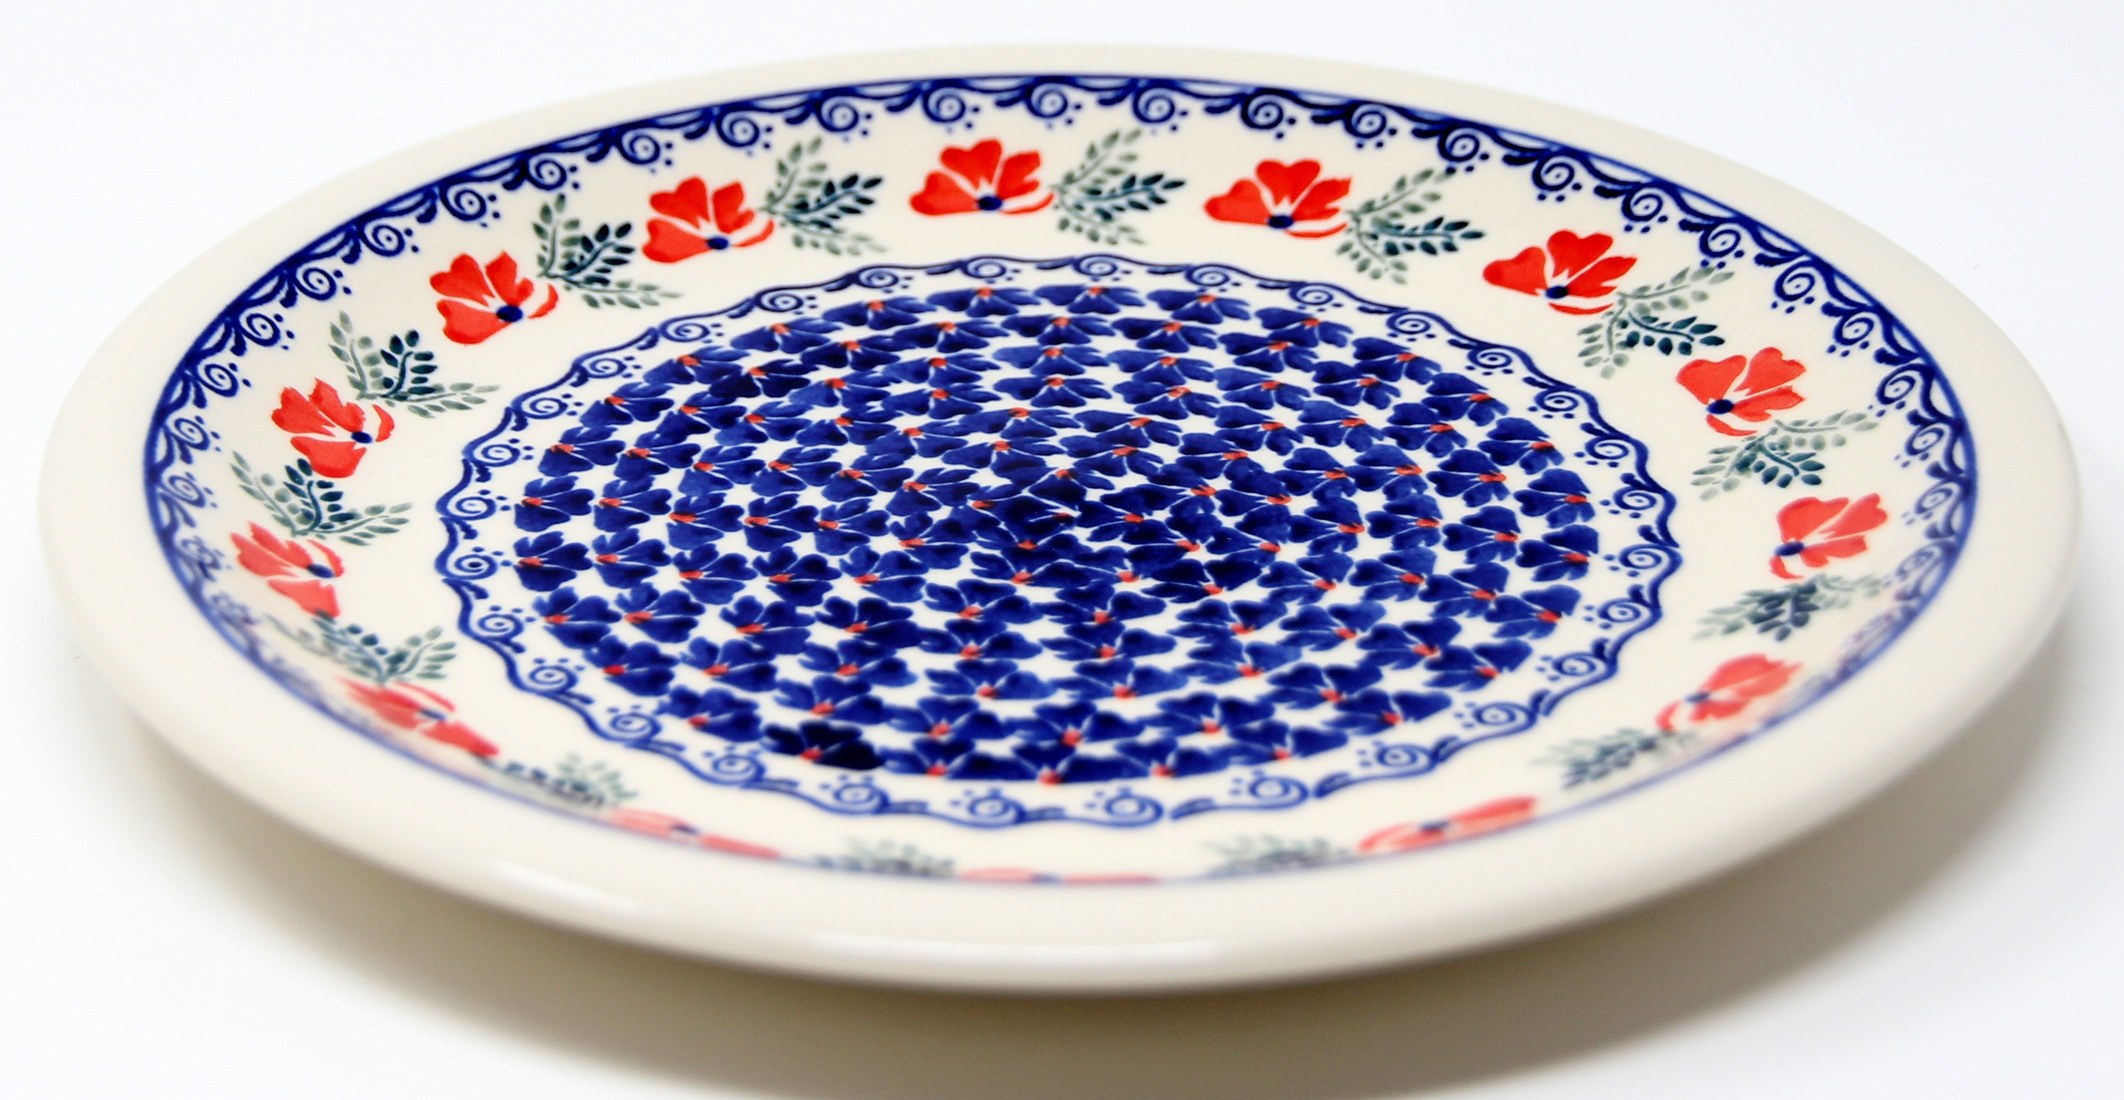 Polish Pottery Dinner Plate, Classic Design 1115